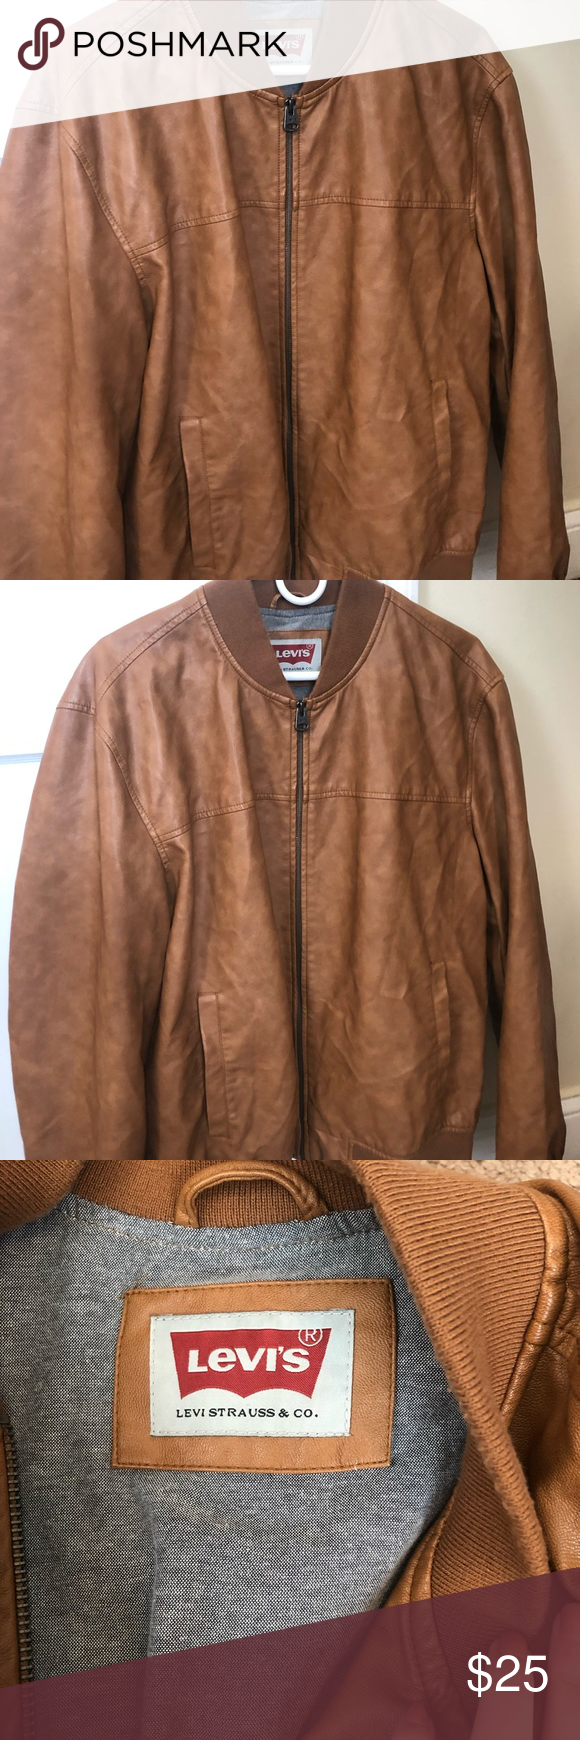 Levi's Leather Jacket ( Large ) This men's jacket is a